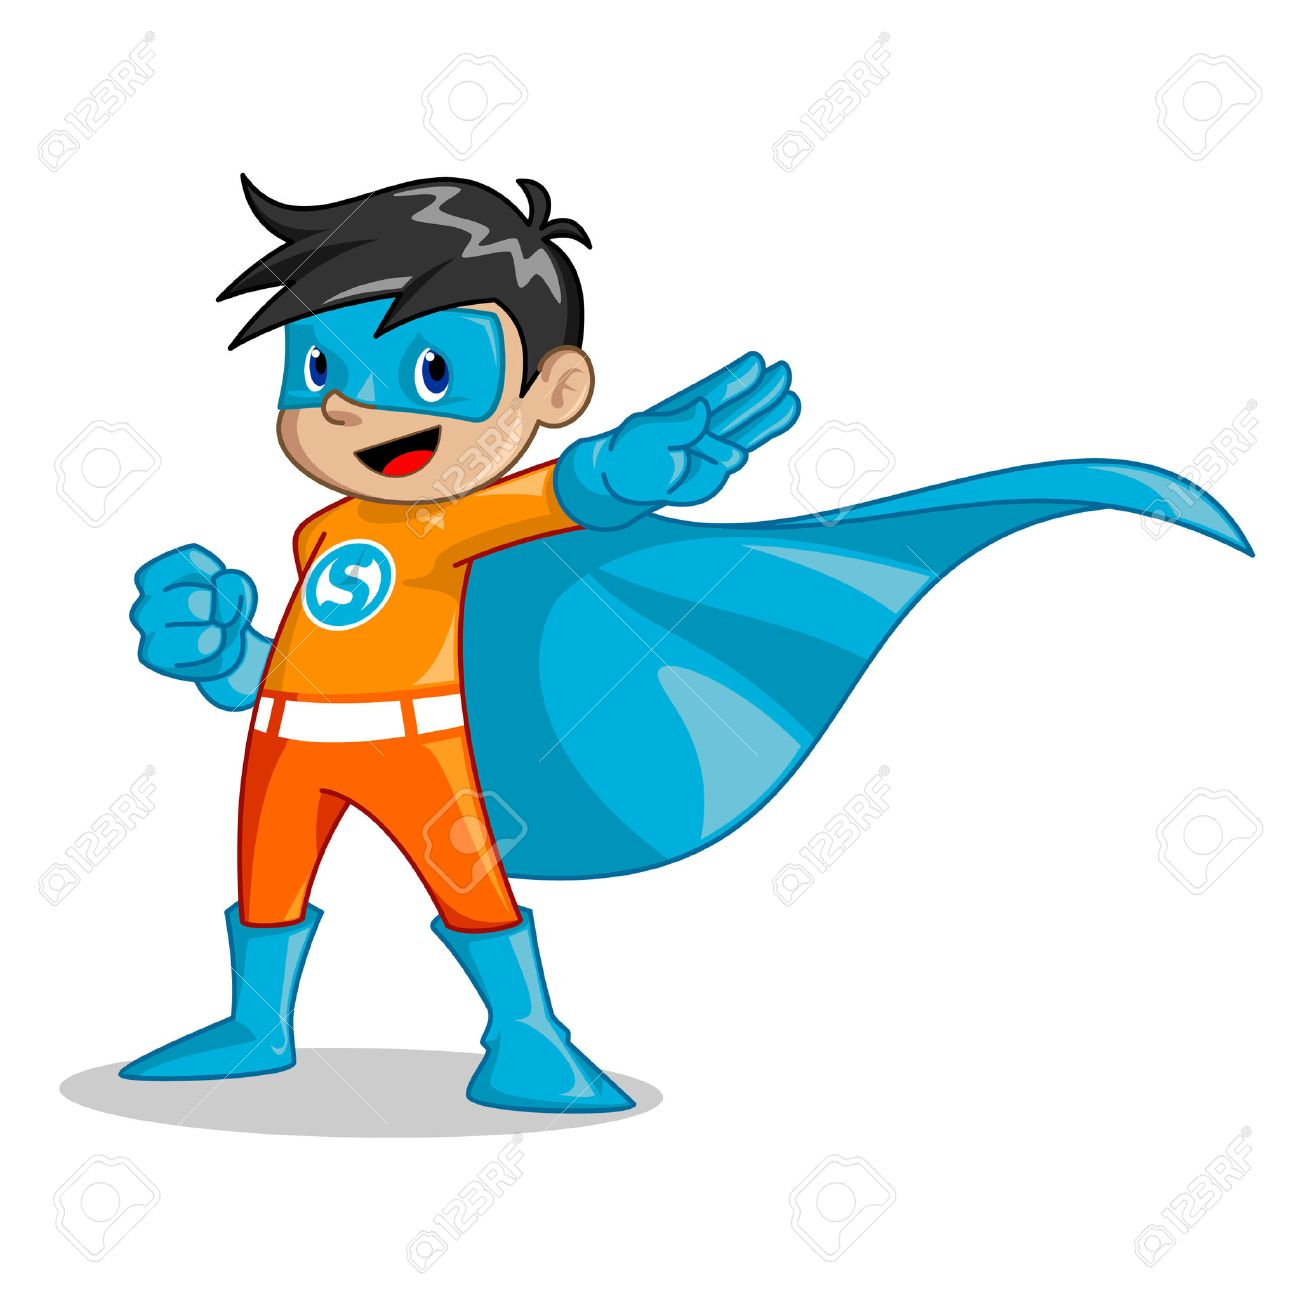 Illustration of boy that be the super hero it can be used as a mascot for education company for children organization for kid and any other business. - 41450395